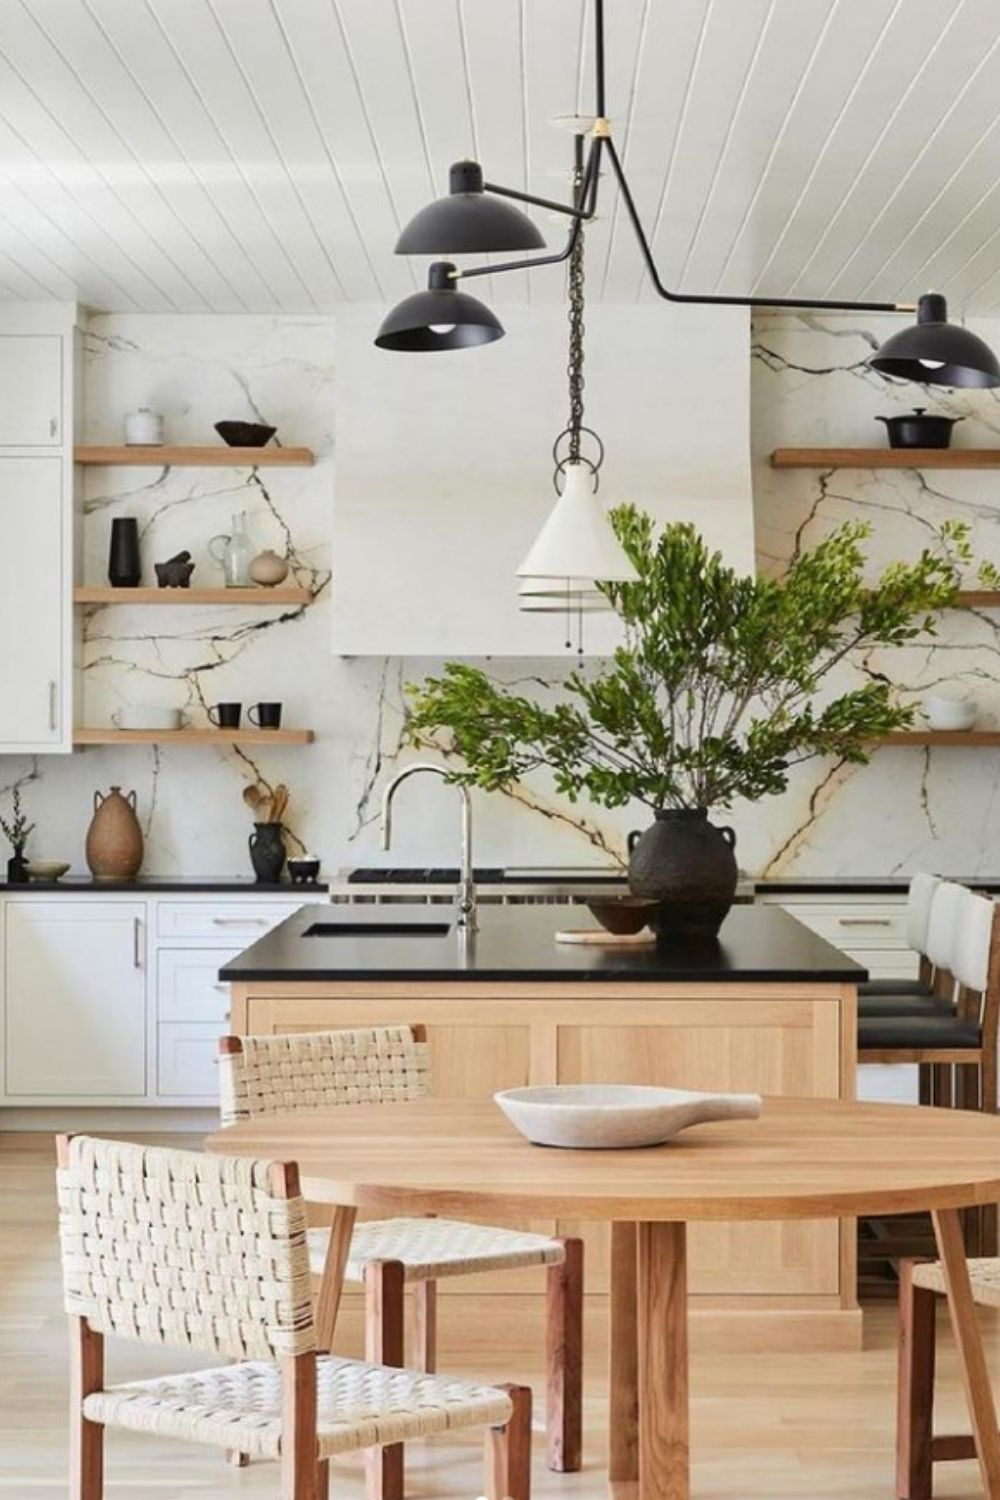 The kitchen is also a good place for greenery